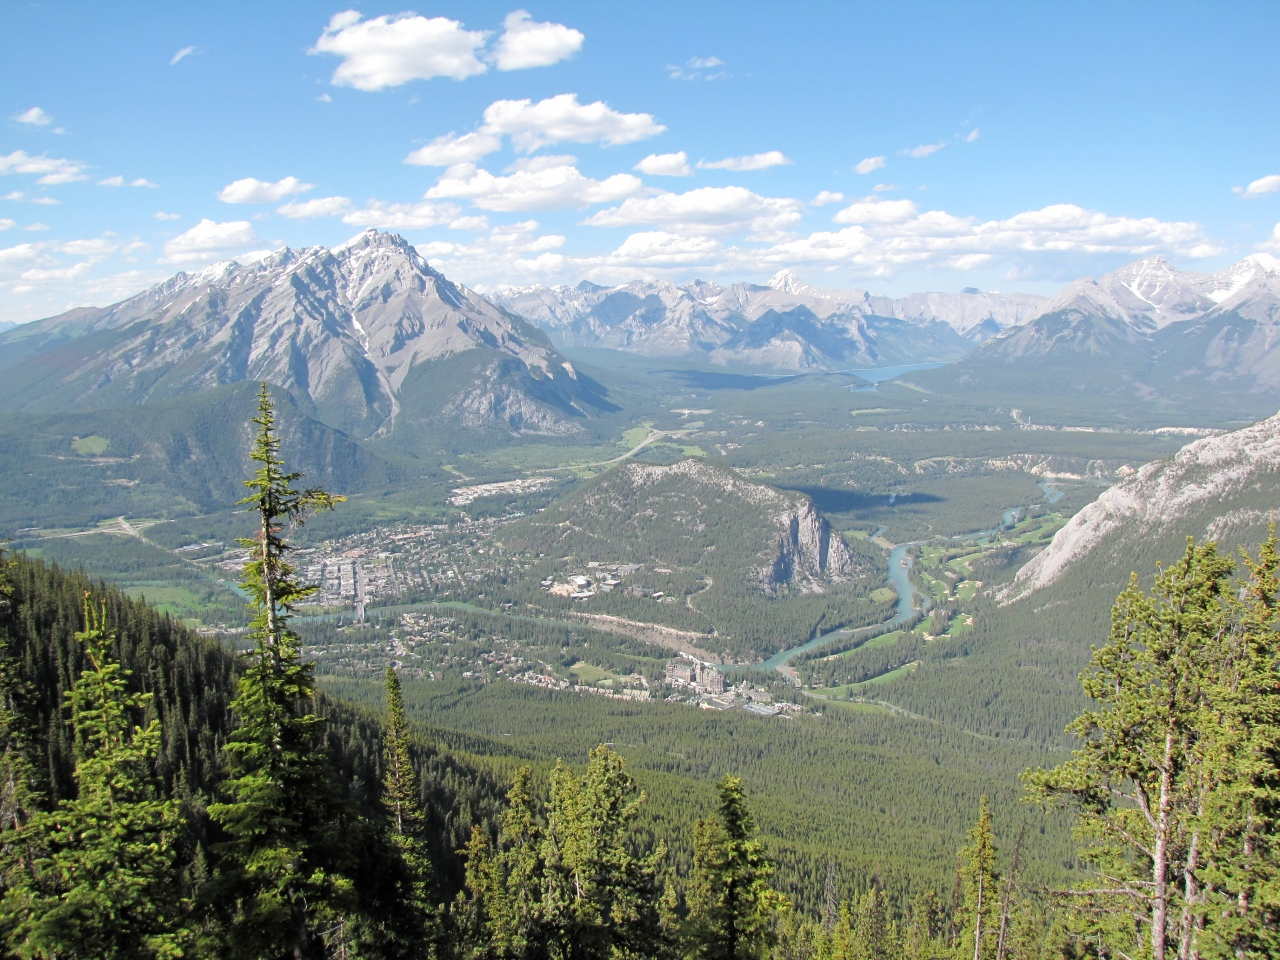 The Rockies from Mt. Sulphur. Can you spot Banff Springs Hotel?